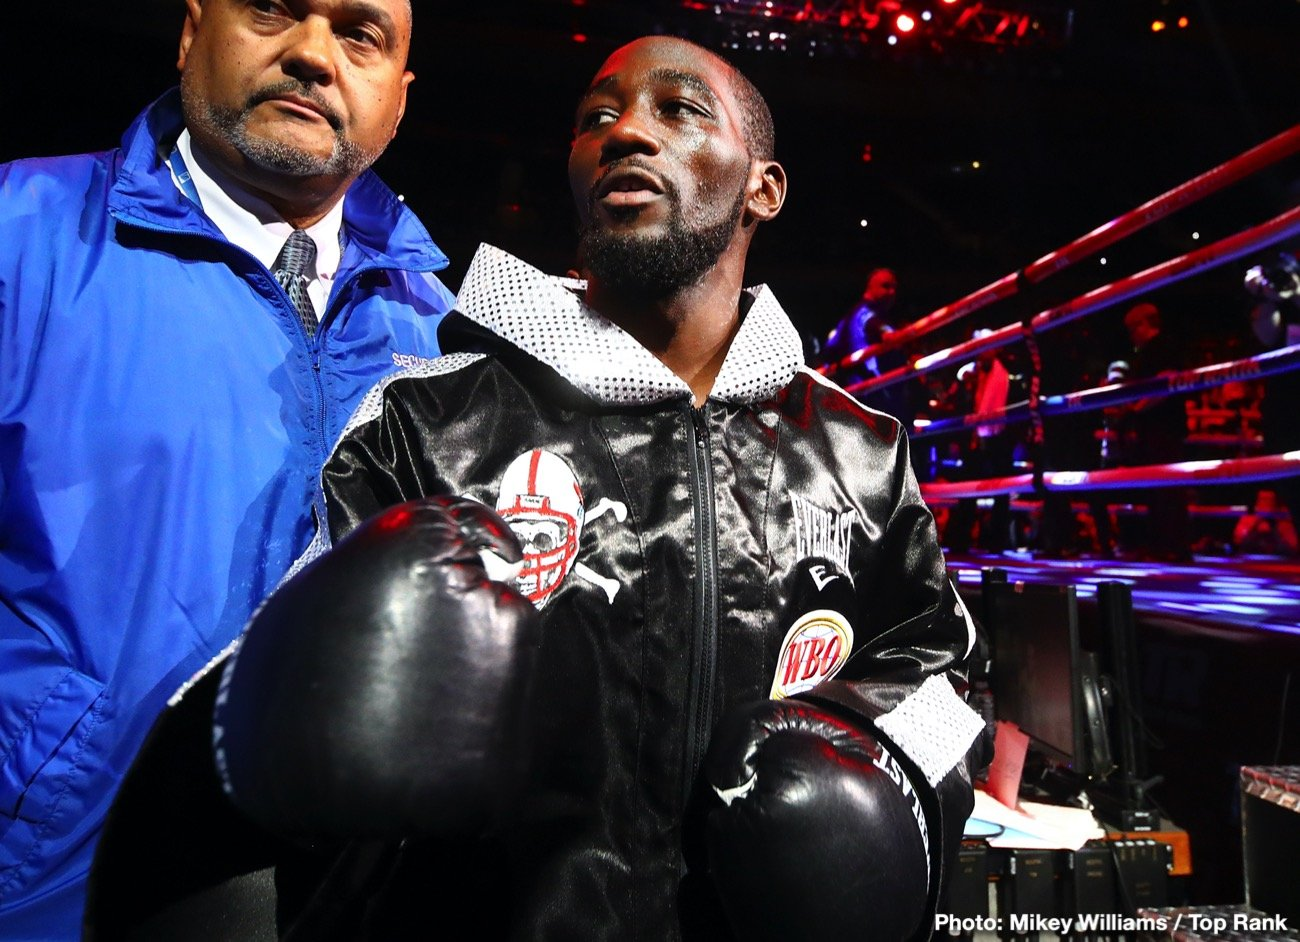 Bob Arum, Manny Pacquiao, Terence Crawford - Terence Crawford has changed his mind about not wanting to fight this year, and he could be back in the ring in November. Promoter Bob Arum said to Espn that he's already had a conversation with Crawford (36-0, 26 K.O.s) and his trainer/manager Brian McIntyre about bringing him back on November 14 or 21st against an opponent still to be determined.